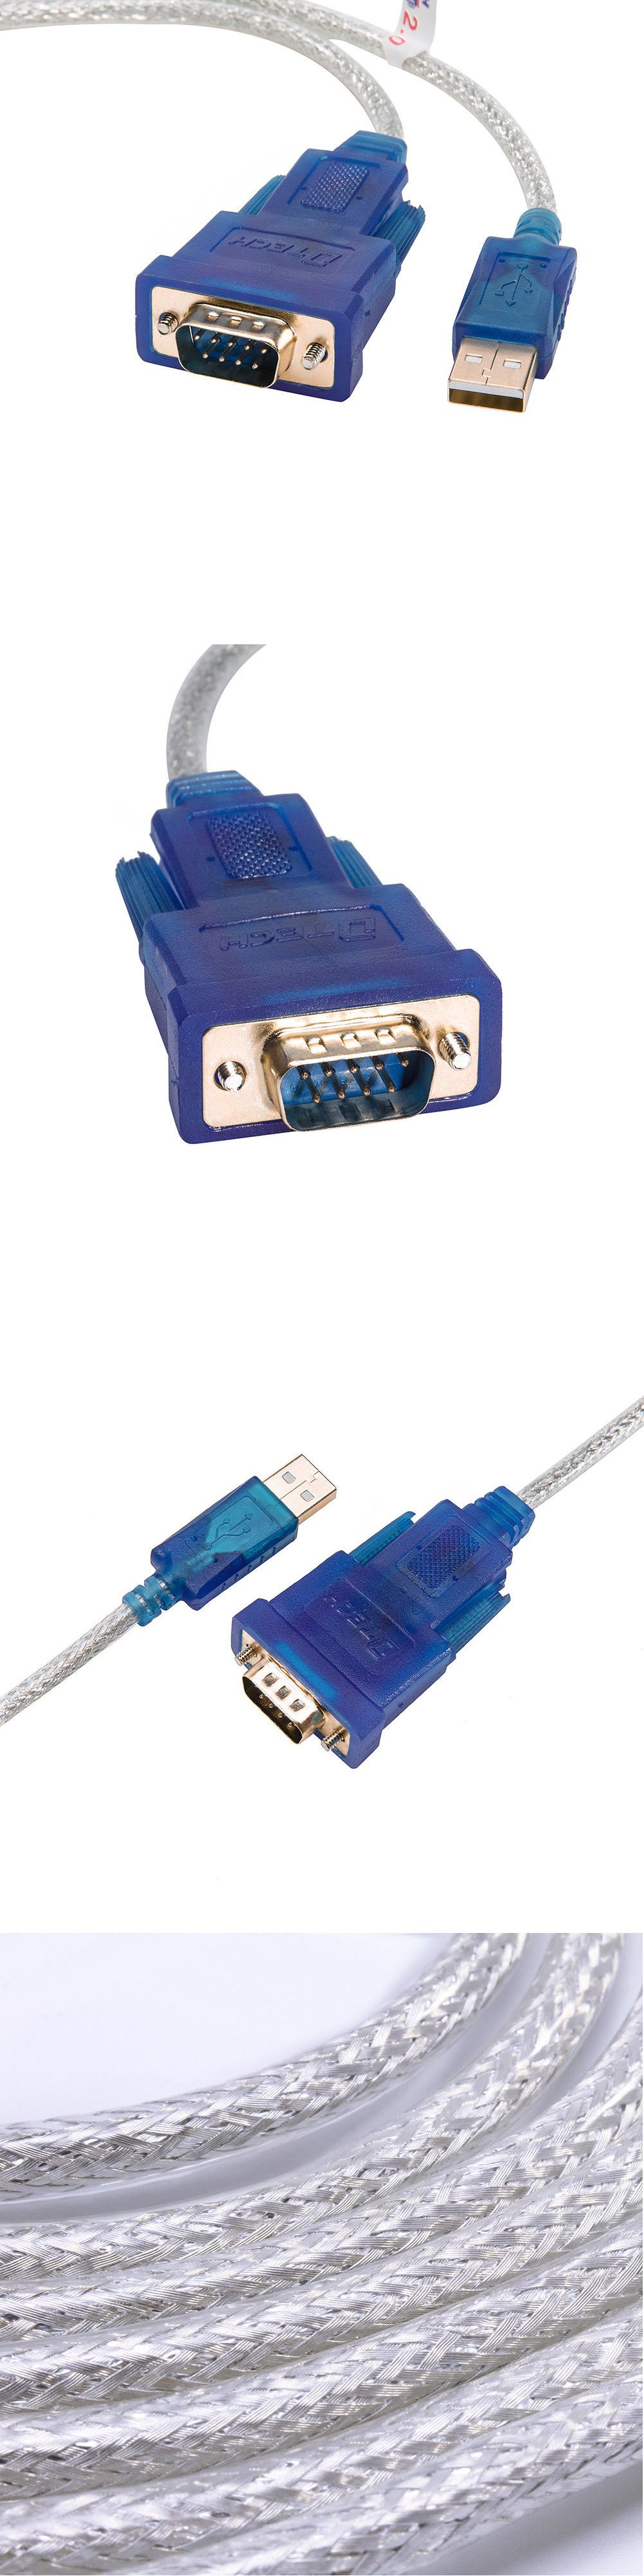 Parallel Serial and PS 2 116848: Dtech Ftdi Serial To Usb Adapter